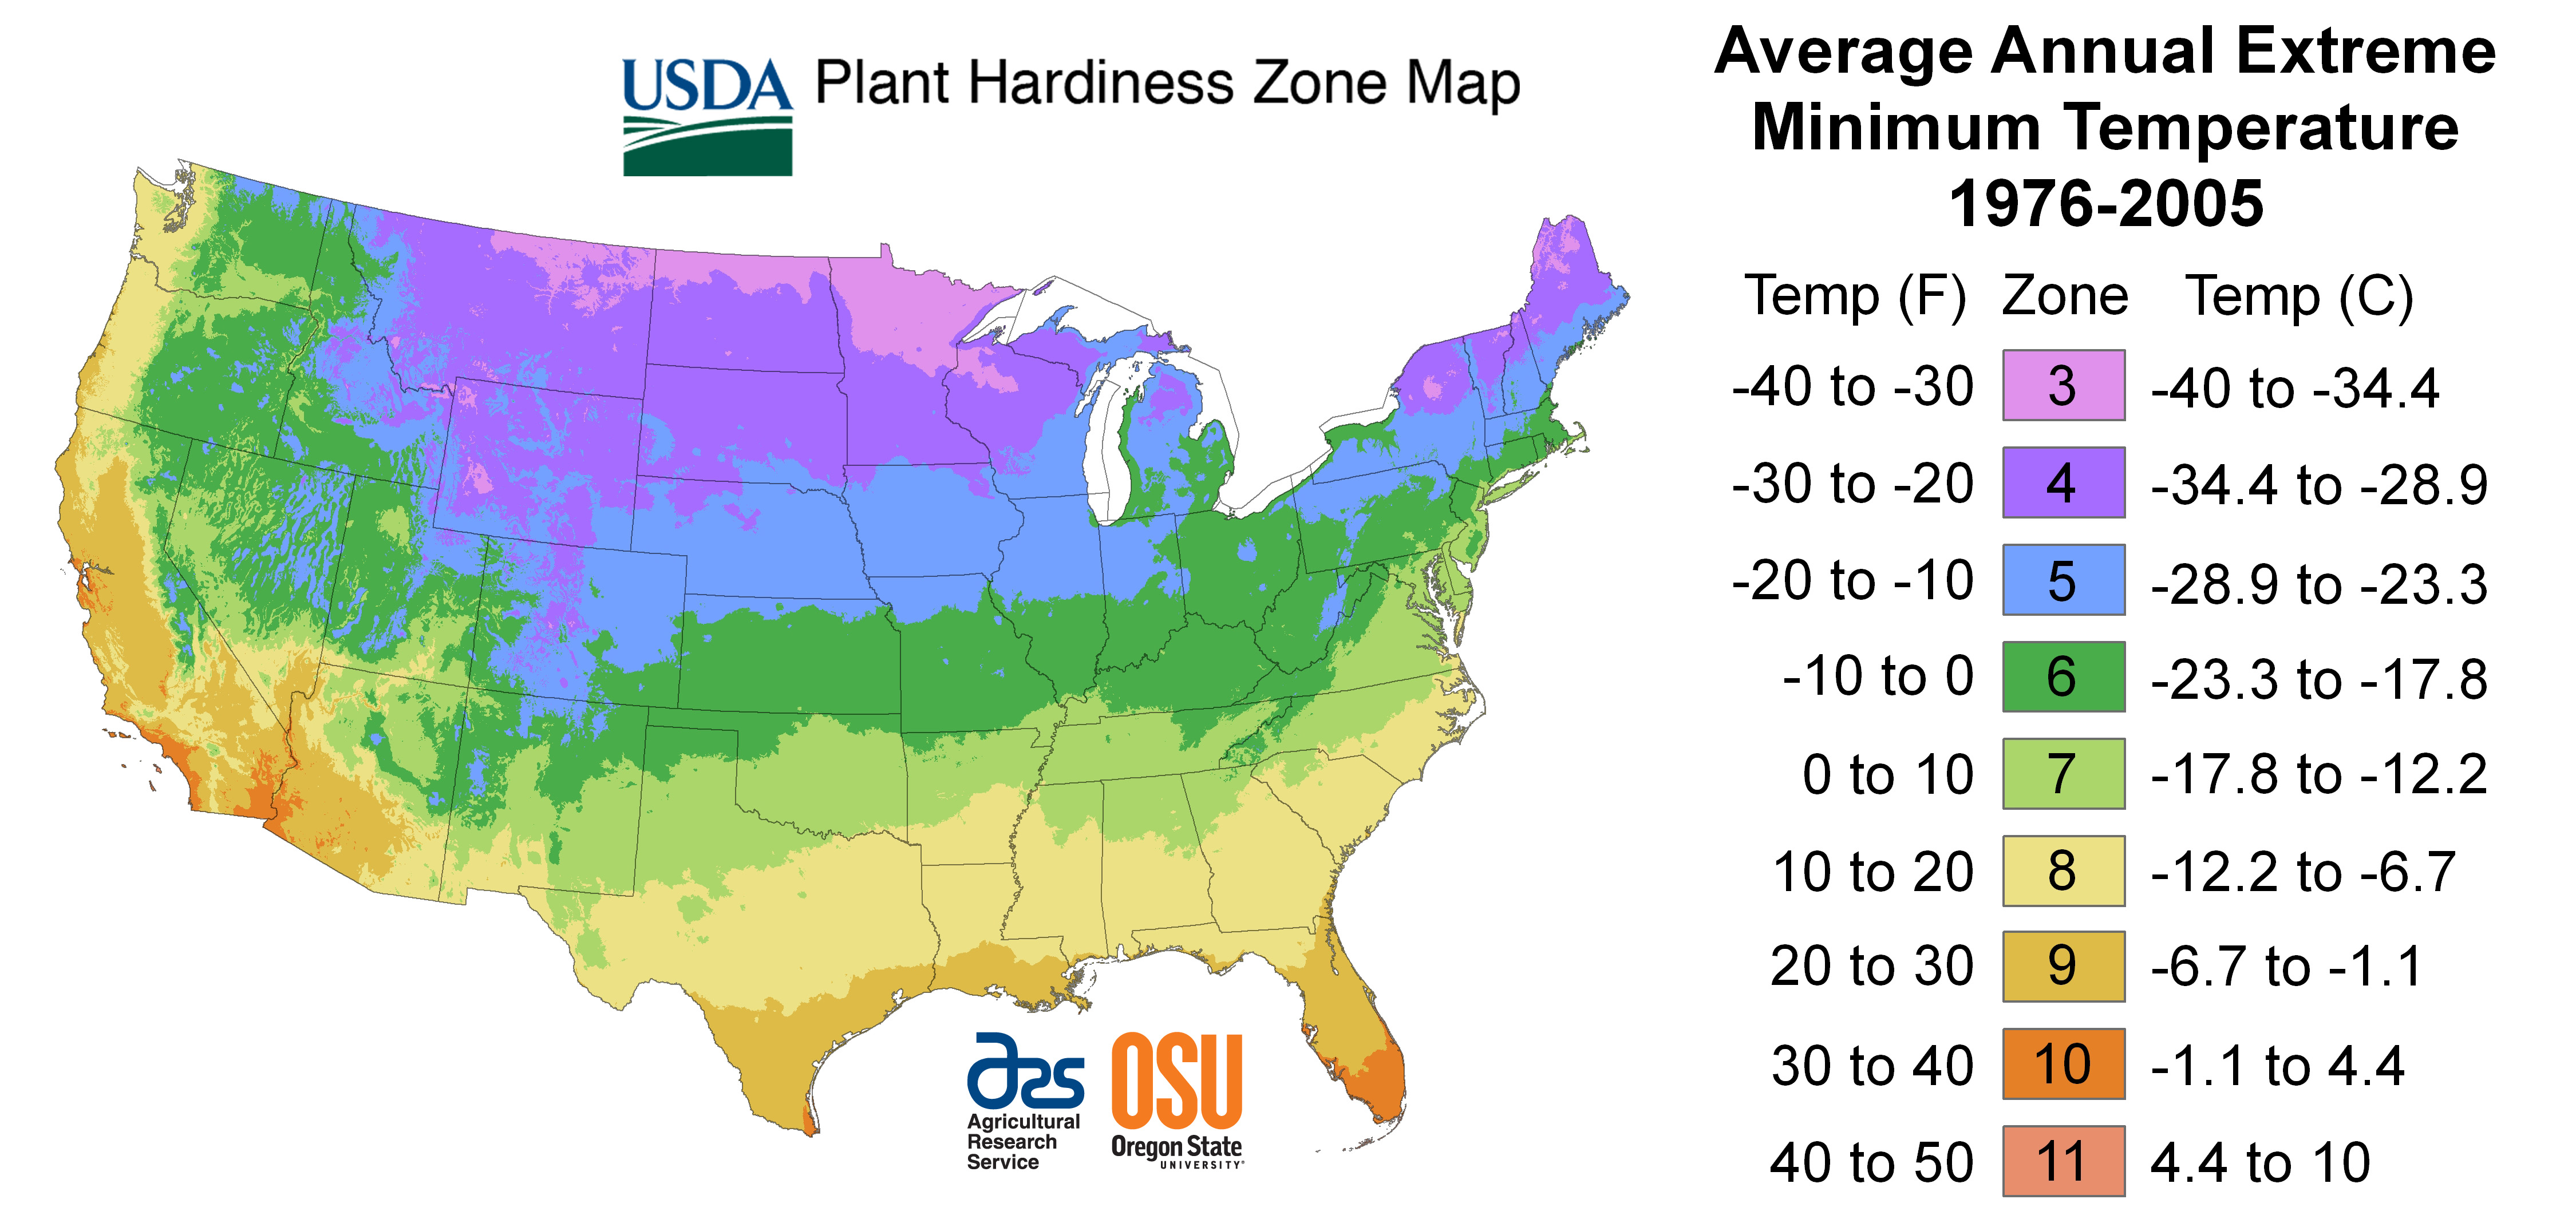 Hardiness Zone Map – Eco Lawn & Garden on gardening region zones, gardening zones zip code, gardening questions, gardening services, saudi arabia climate map, gardening in containers, gardening schools, gardening product, gardening encyclopedia, gardening zones 2014, gardening schedule, gardening climate zones, gardening sayings, gardening shovel, gardening plants, horticulture zones map, gardening icon, gardening posture, gardening temperature zones, gardening hardiness zones,